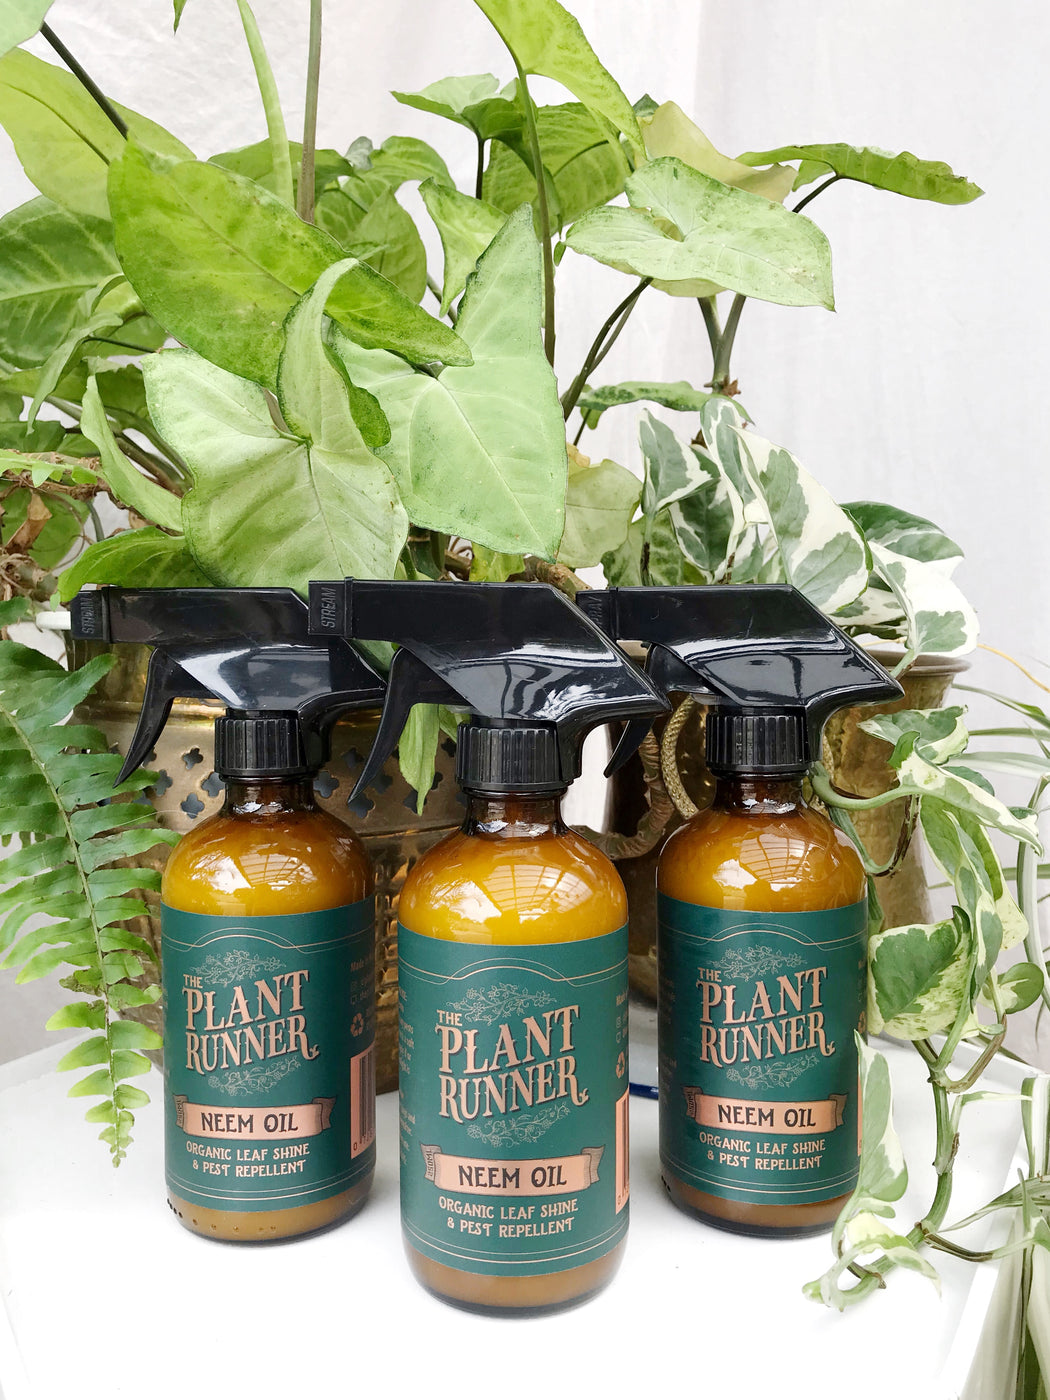 Organic Neem Oil Leaf Shine and Pest Repellent